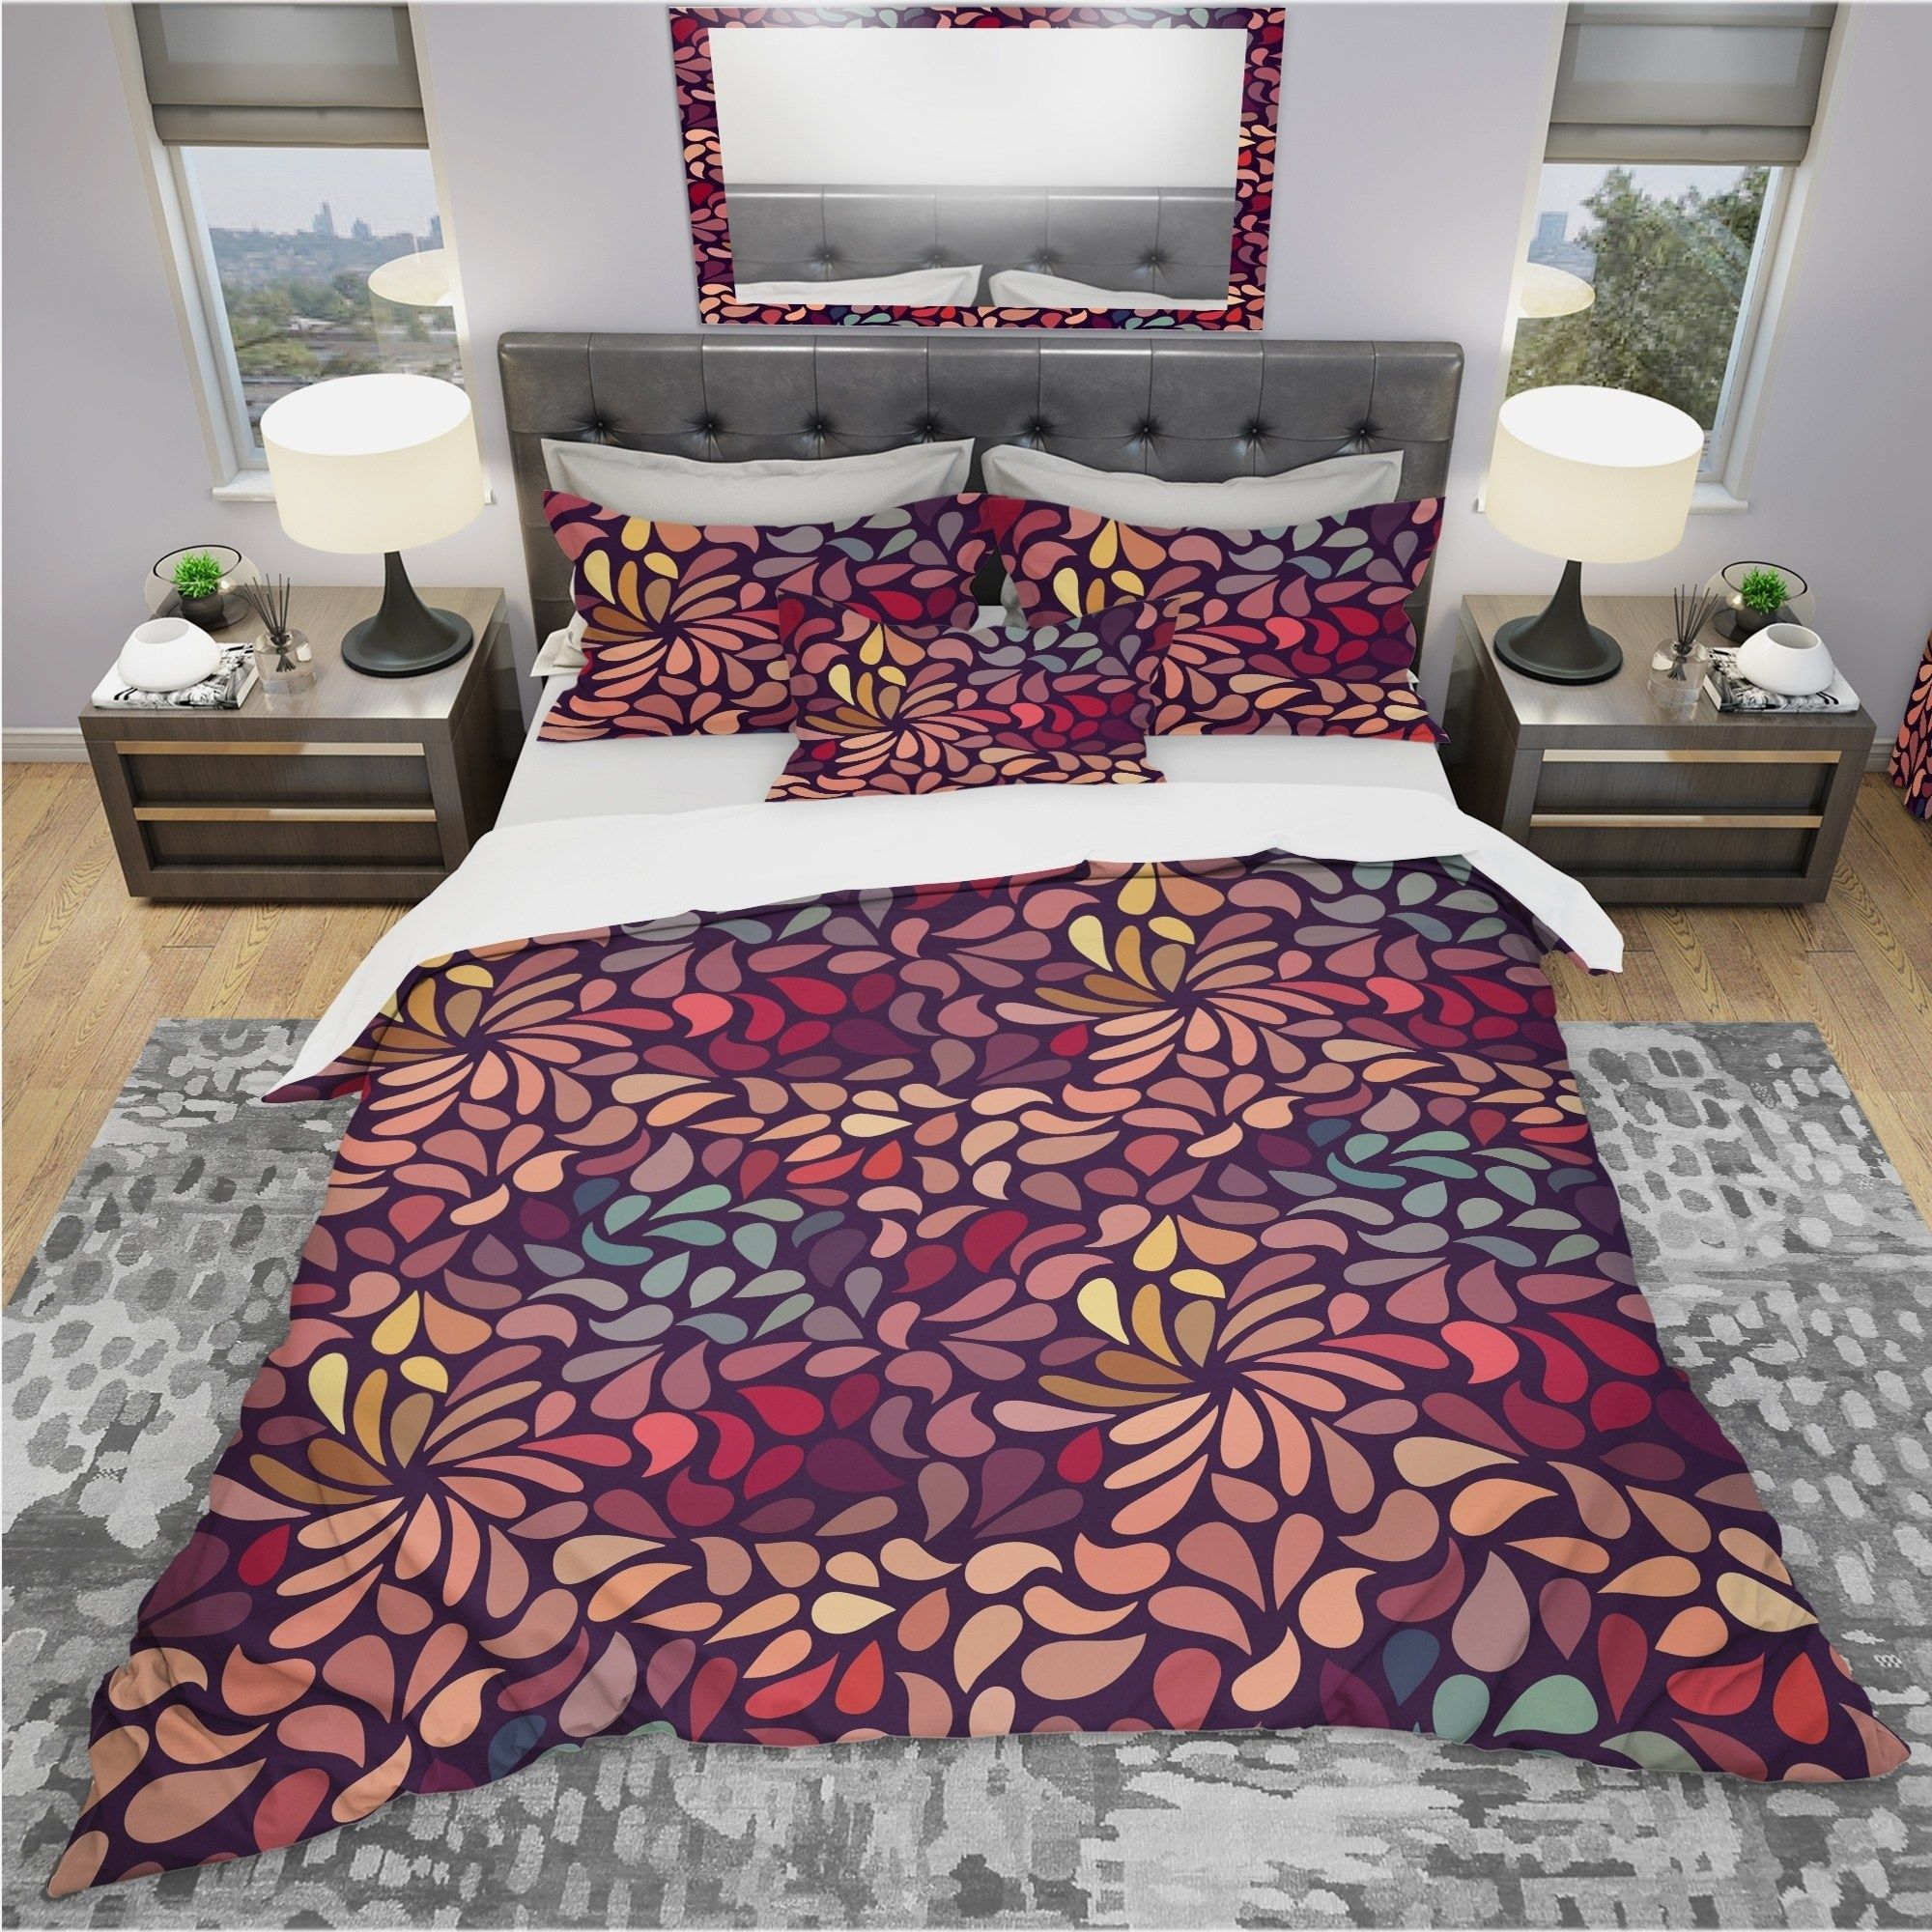 Designart Abstract Floral Pattern Bohemian Eclectic King Size Duvet Cover Set As Is Item King Duvet Cover Sets Eclectic Bedding Duvet Covers Floral